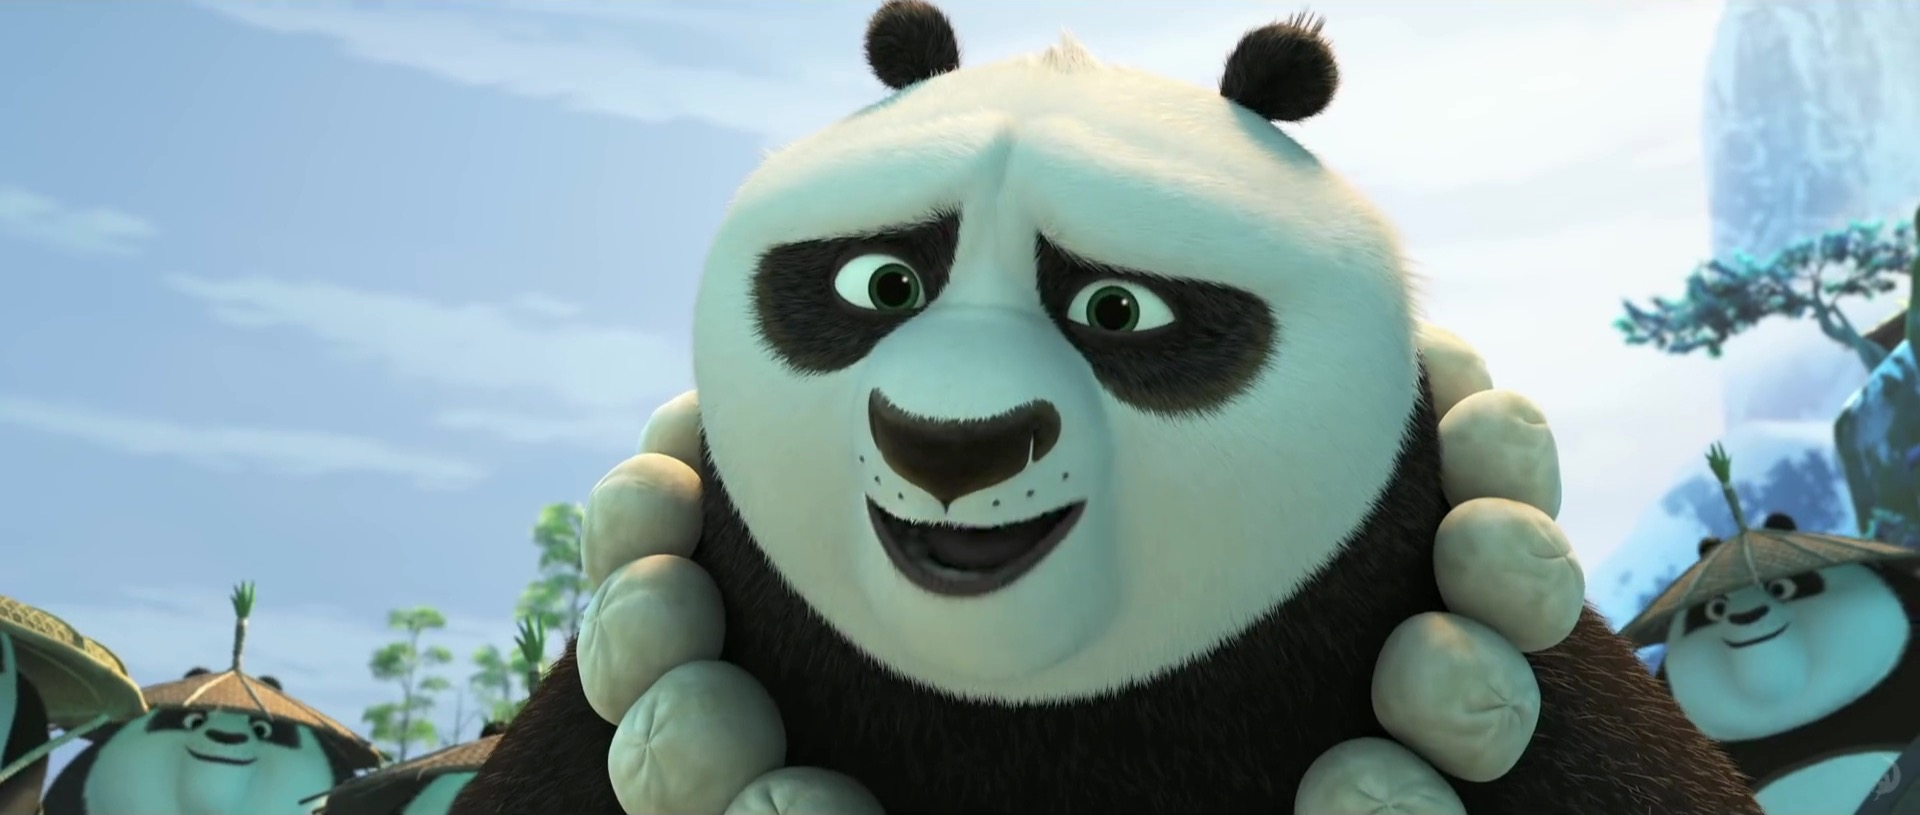 po from kung fu panda 3 desktop wallpaper